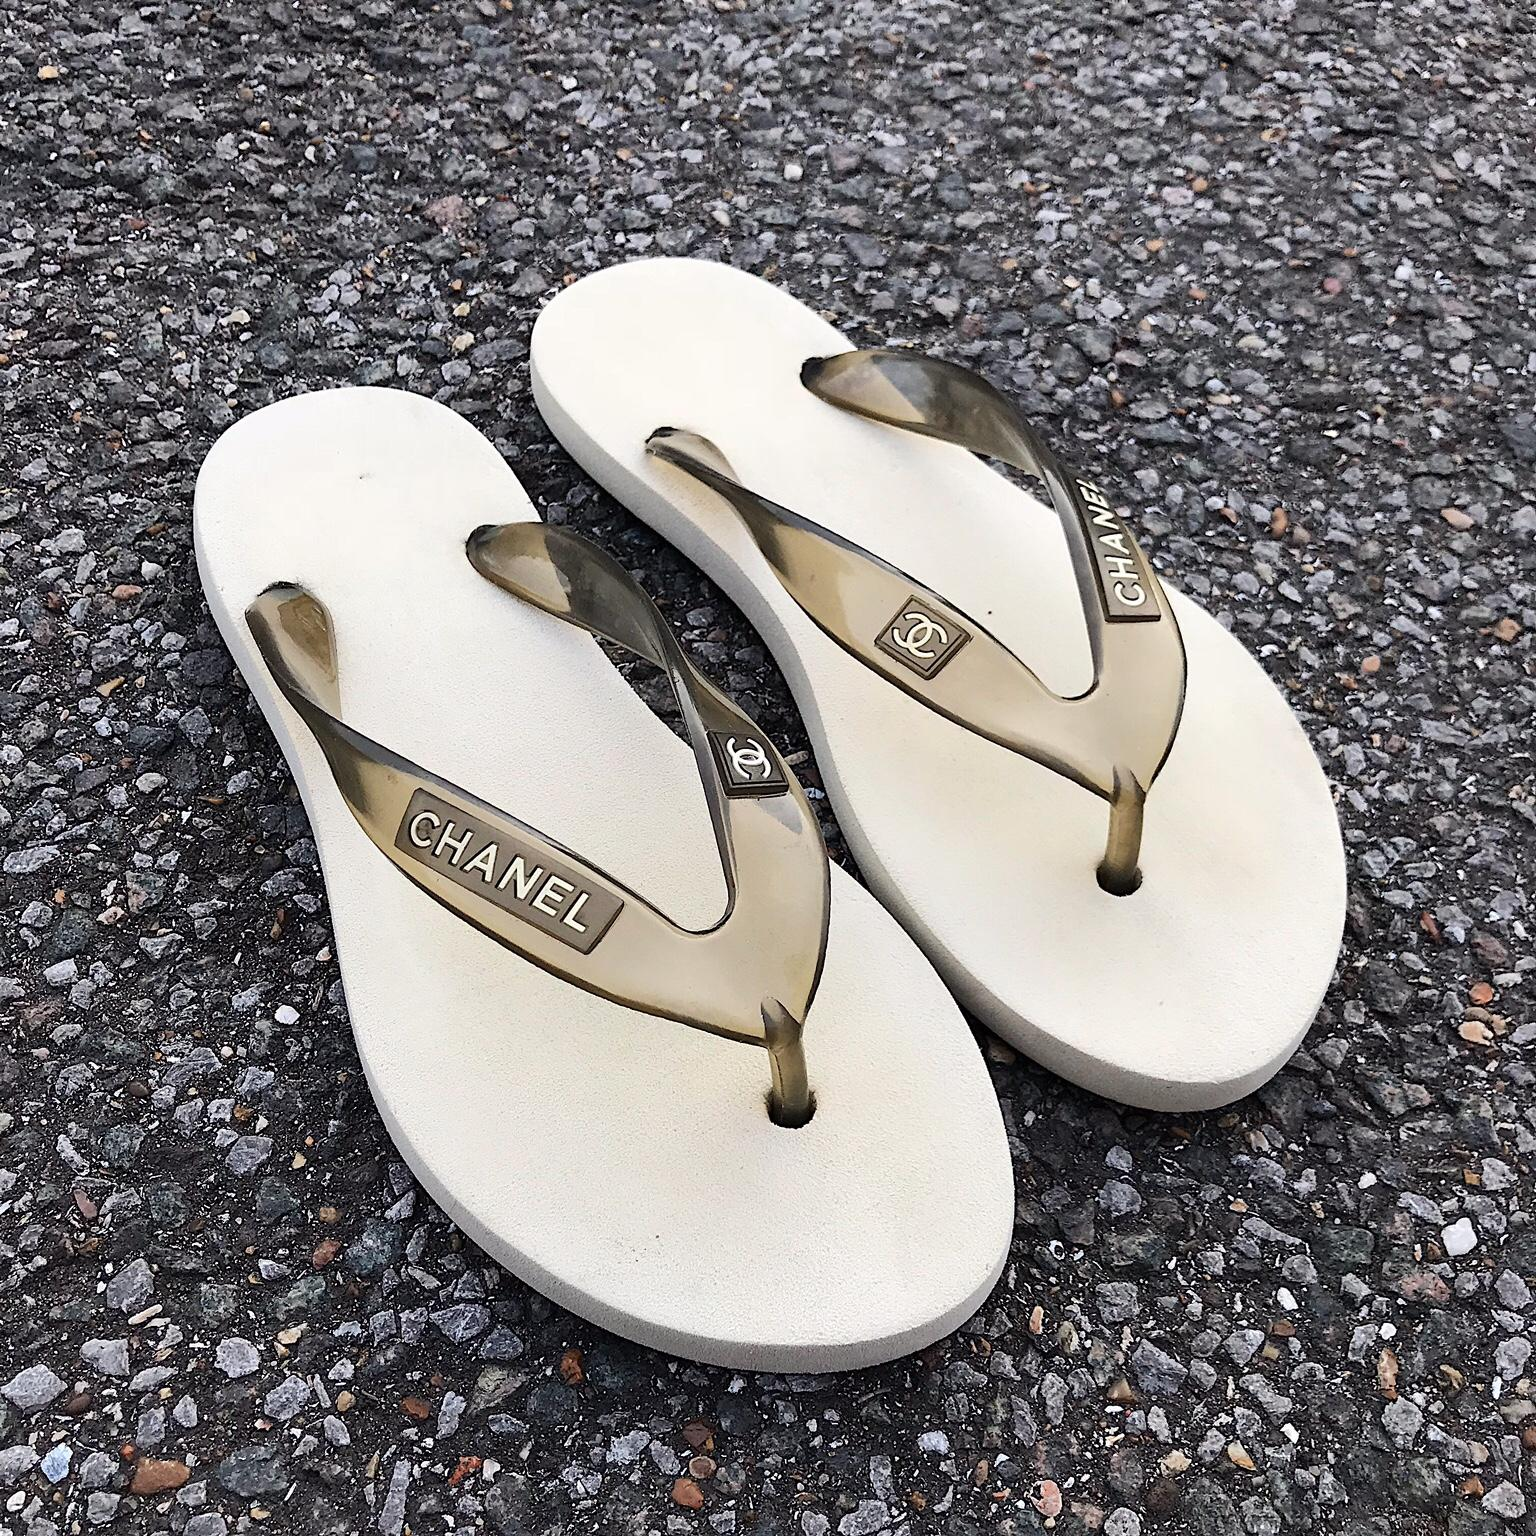 c067fa9a8ac7 Chanel flip flops in GU33 Hampshire for £50.00 - Shpock